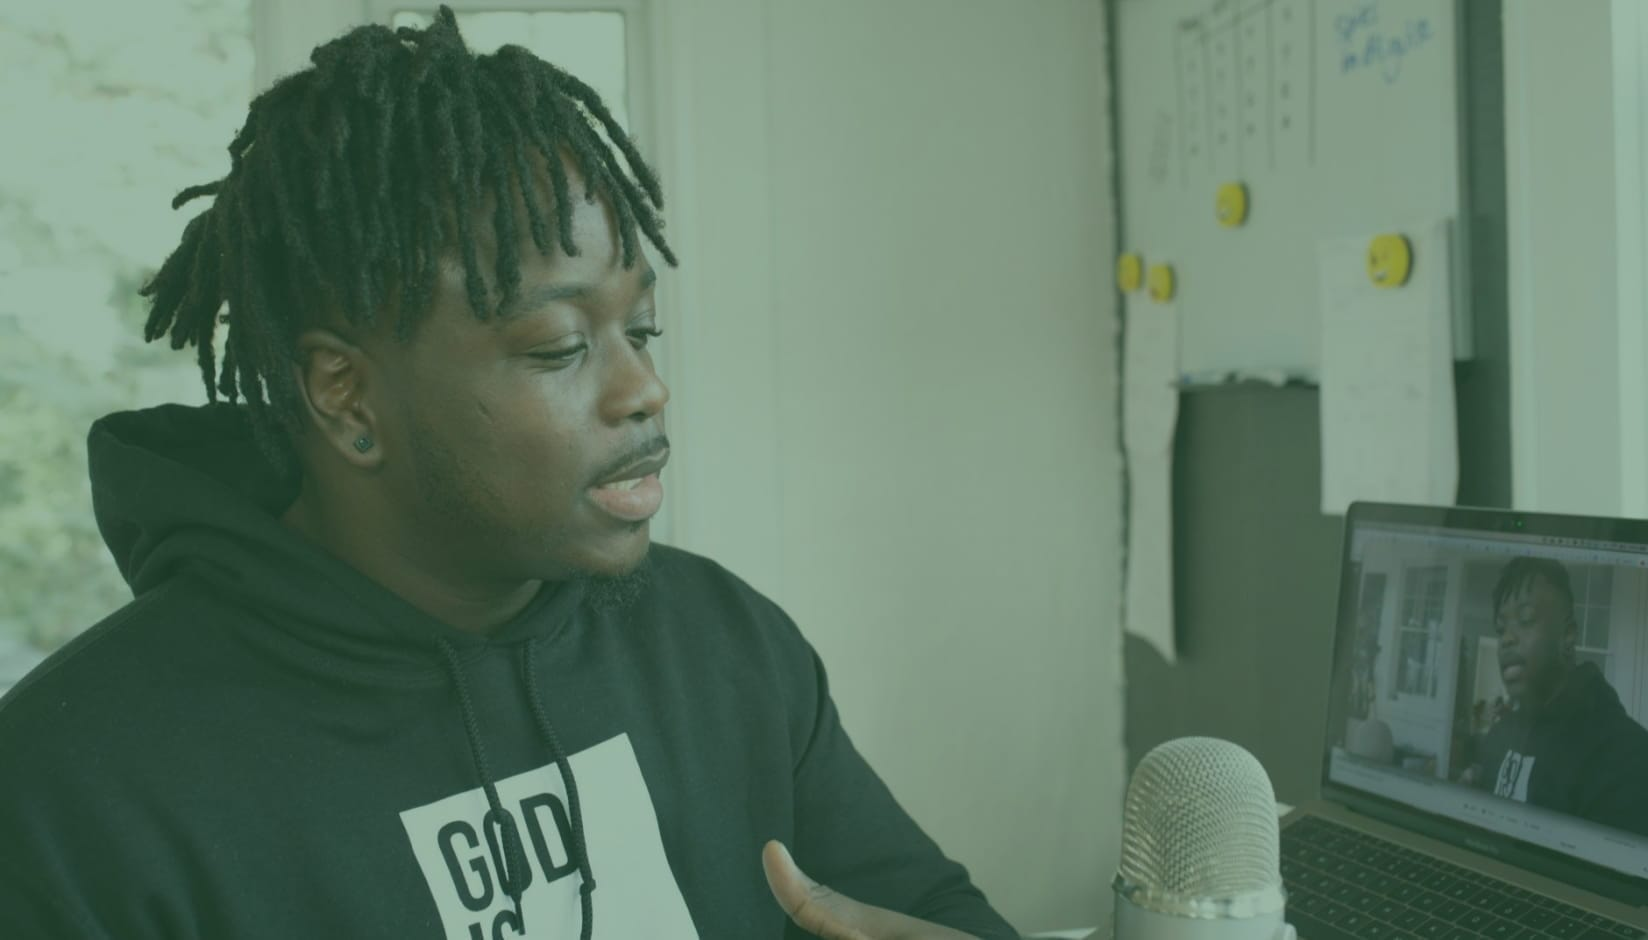 Top 6 Coworking Podcasts for Everyday Listen (+ Audio Marketing Tips)